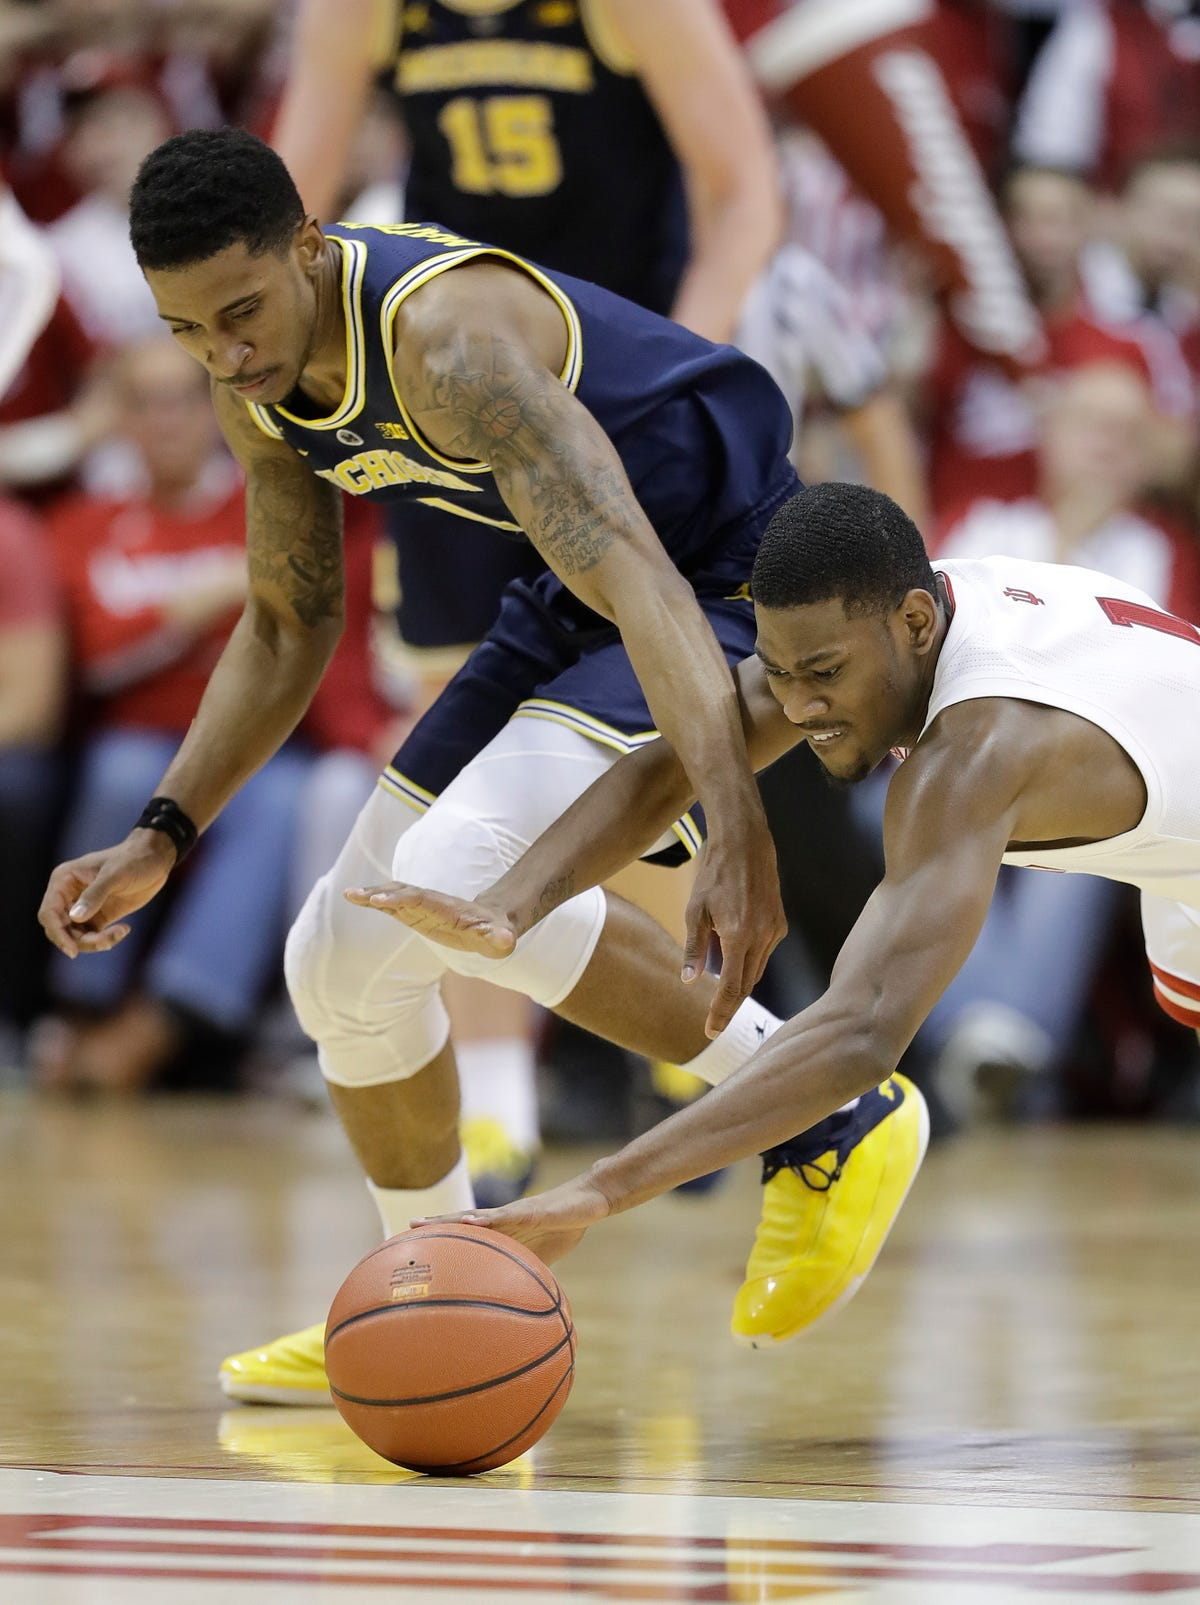 Michigan basketball back on track with win at Indiana